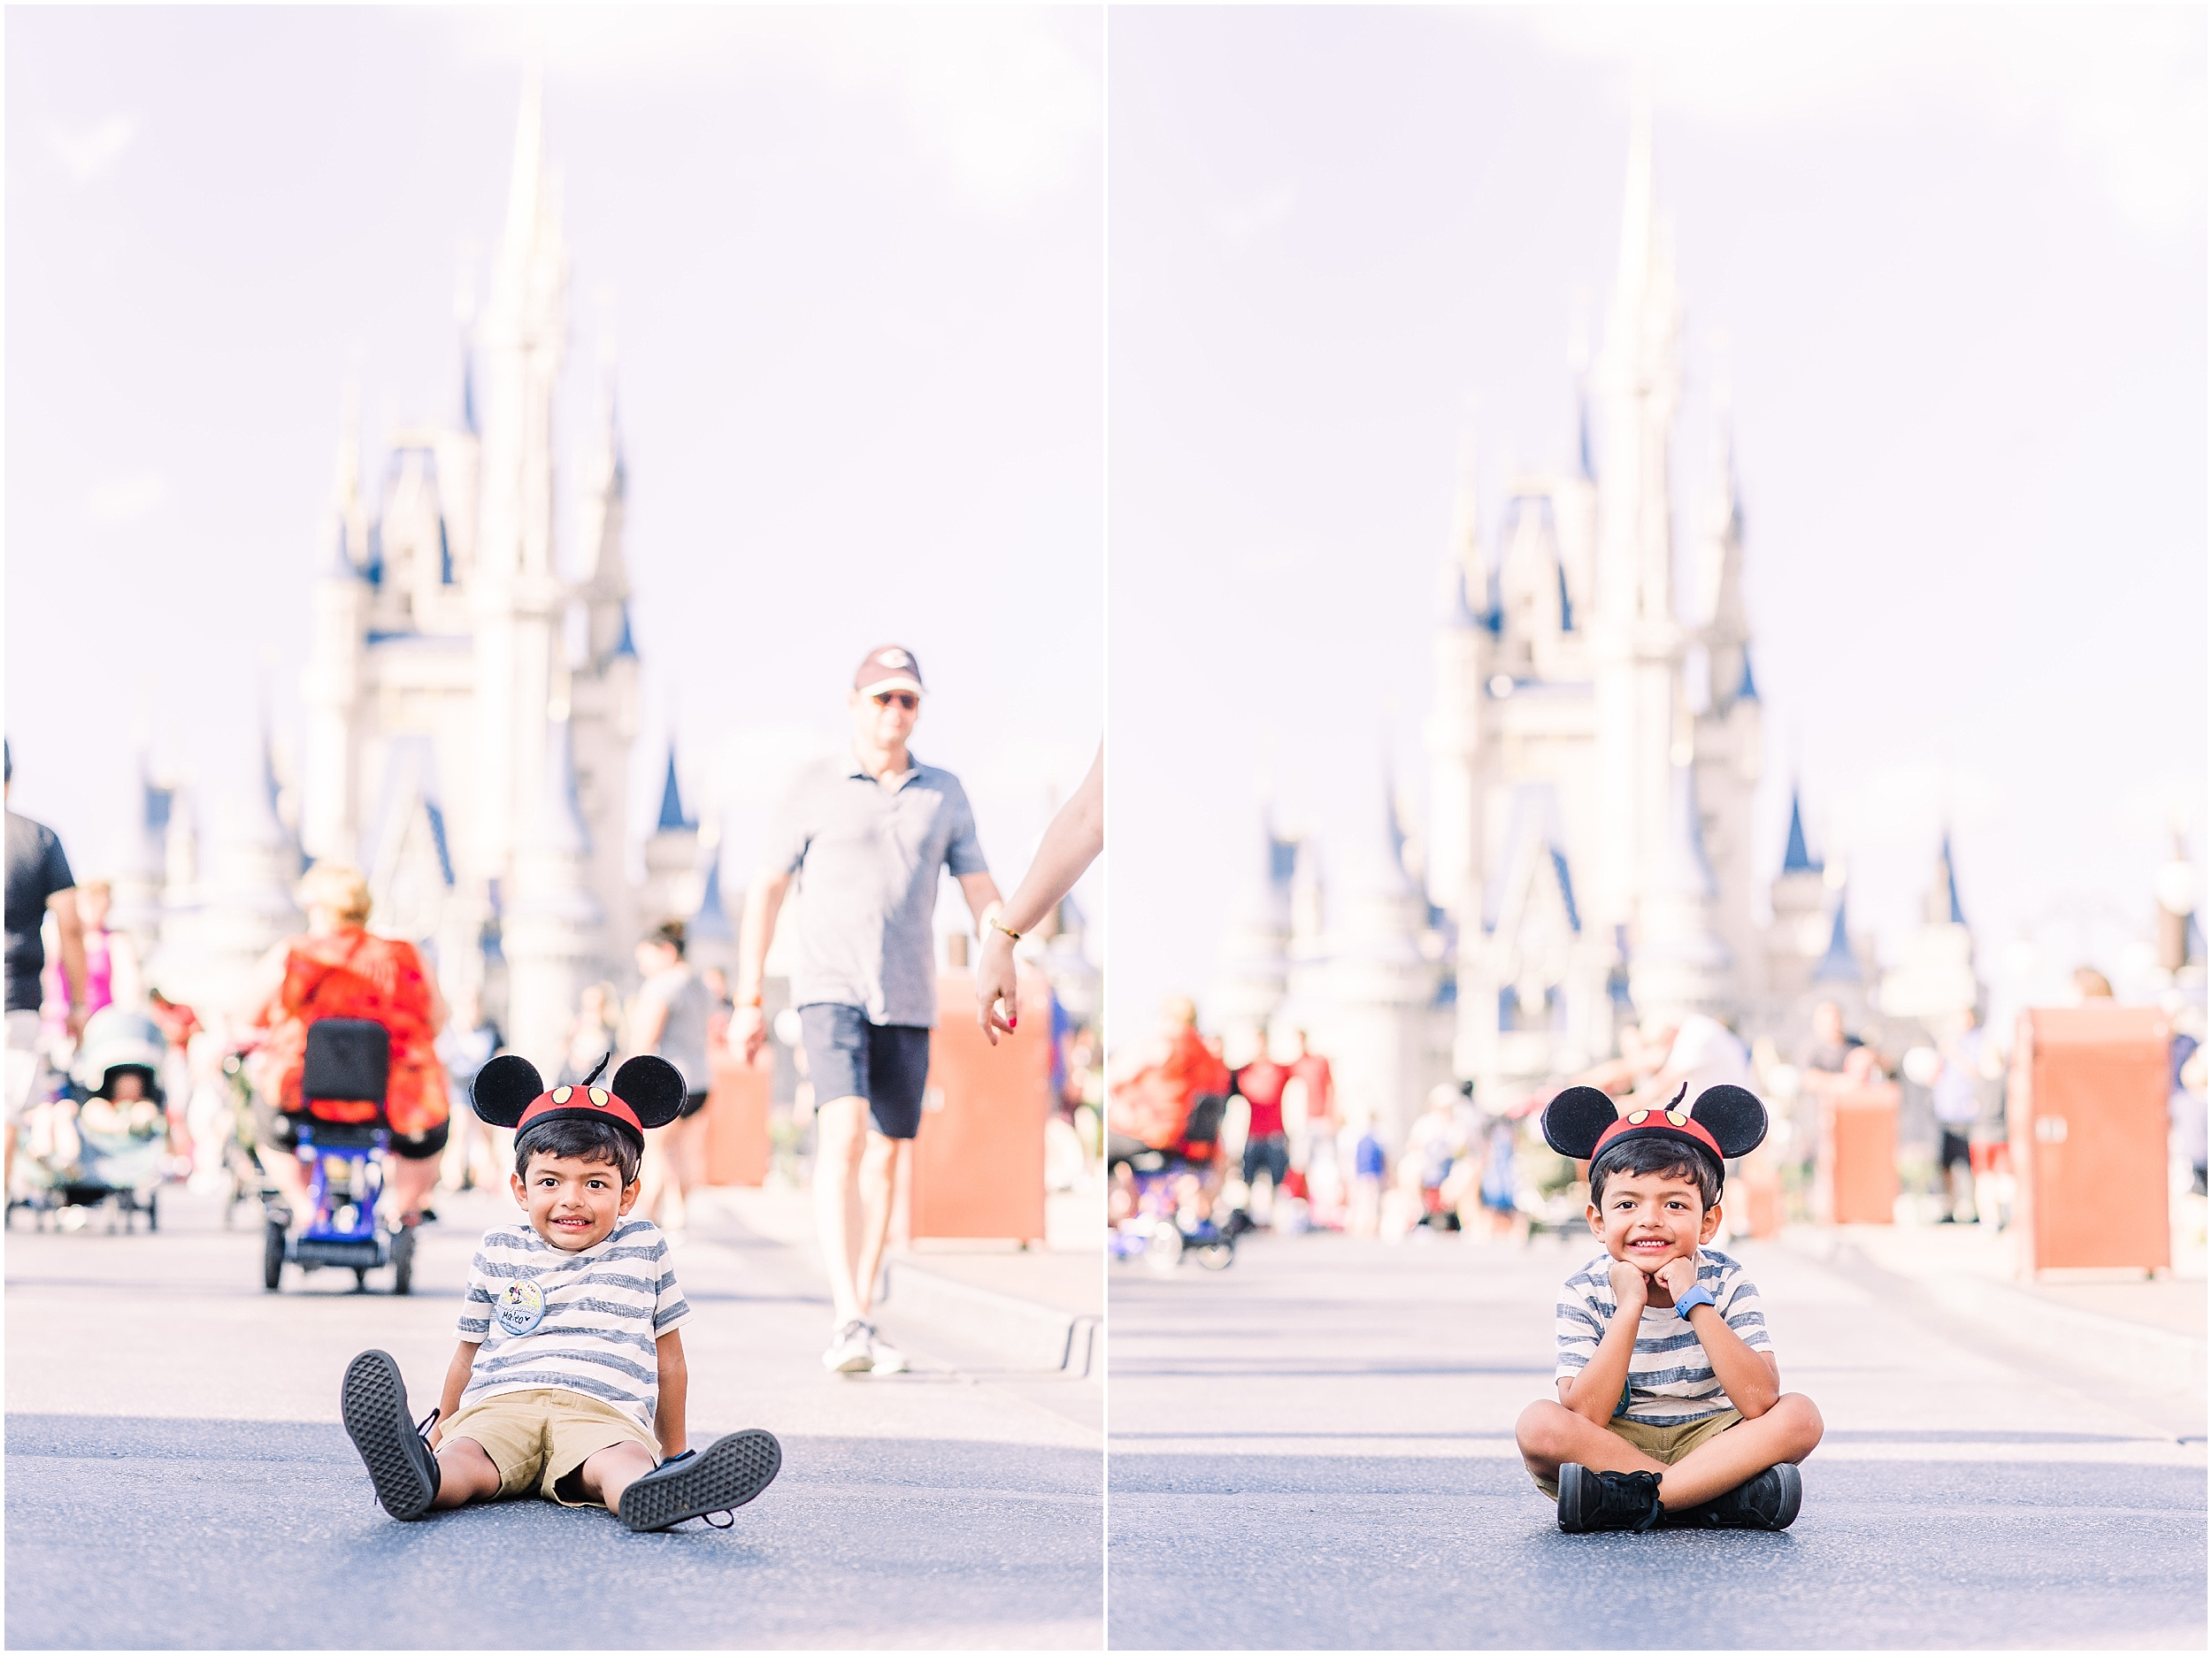 Ventura-California-and-Tallahassee-Florida-Wedding-Photographer-Mateo-turns-five-at-Disney-World-in-Orlando-Florida_0008.jpg